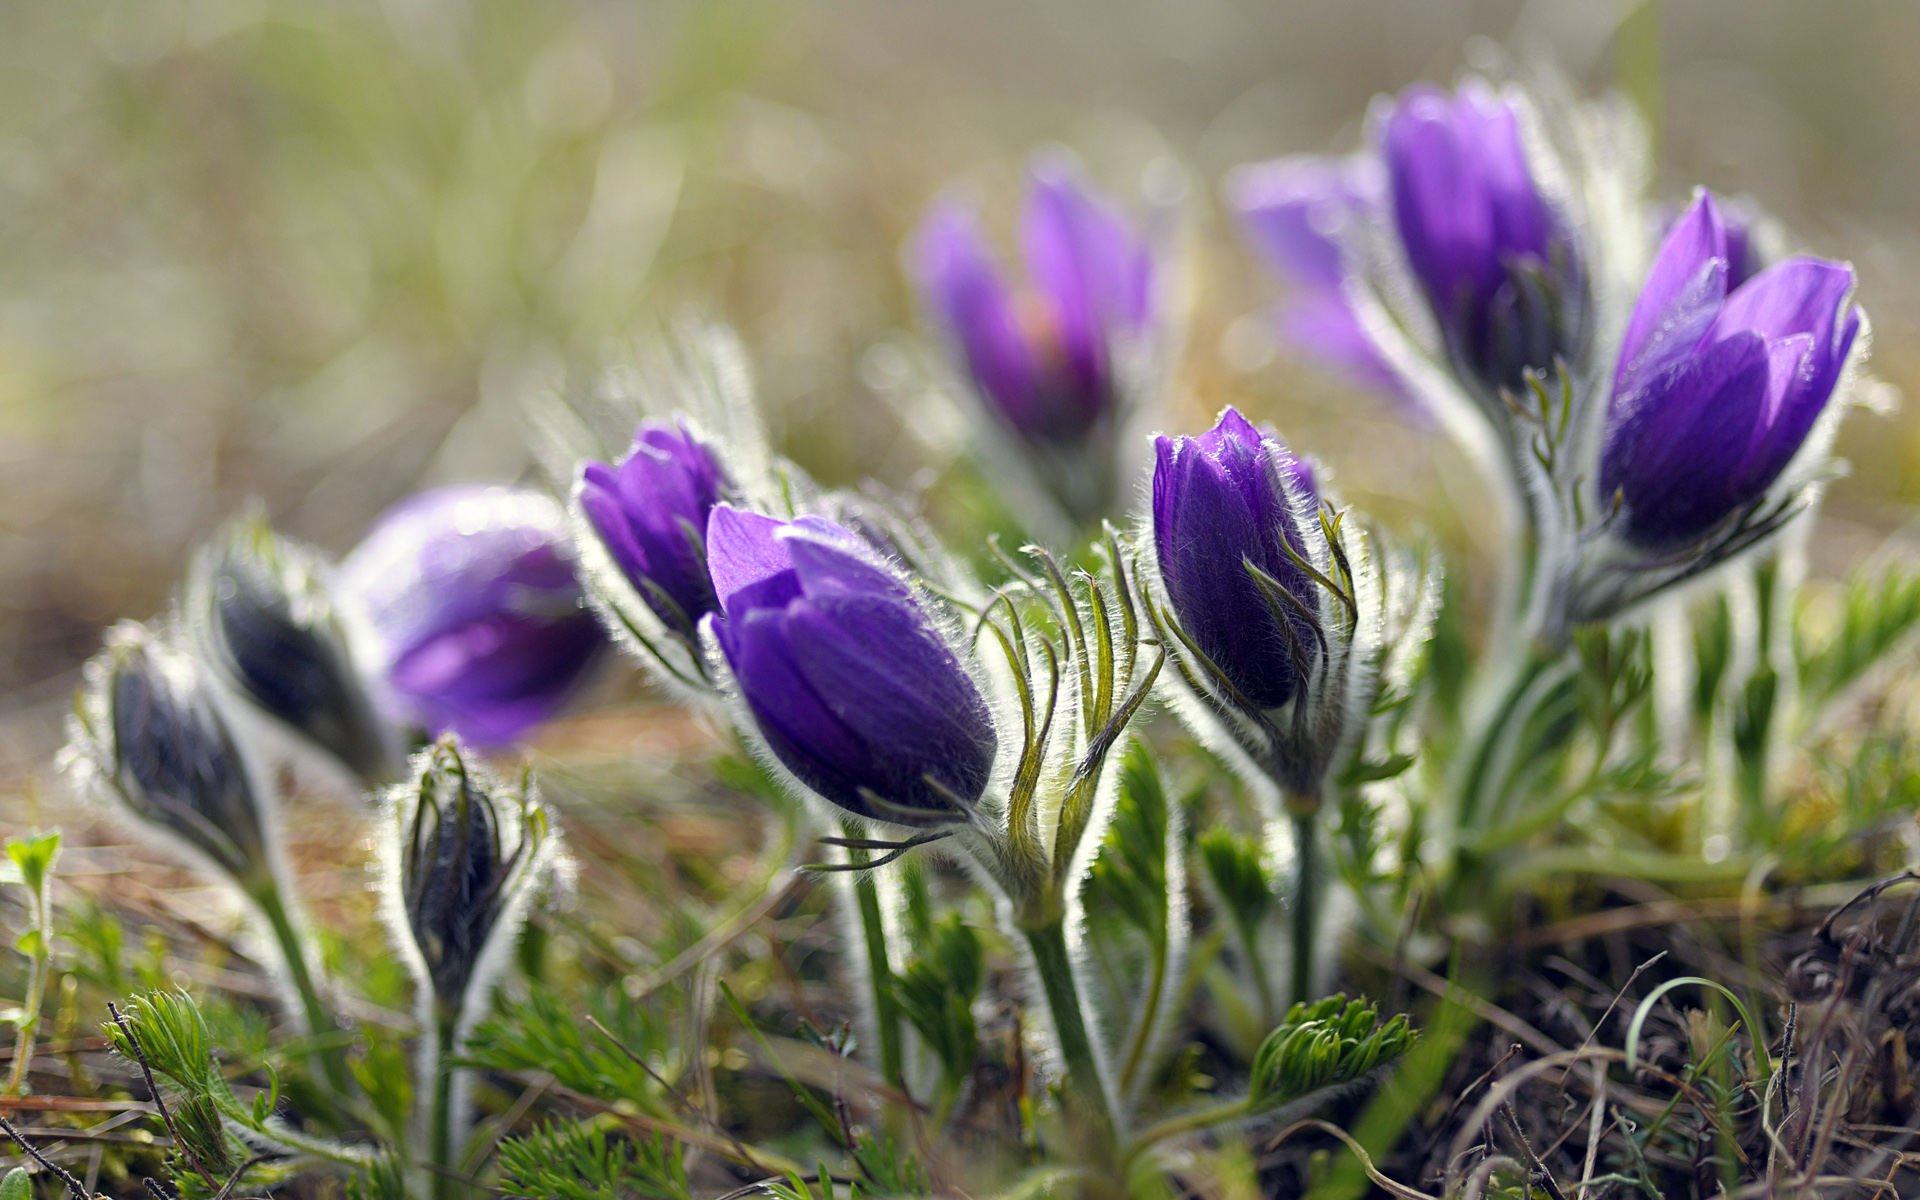 Pasque Flowers, Würzburg, Franconia, Northern Bavaria, Germany   HQ Wallpaper